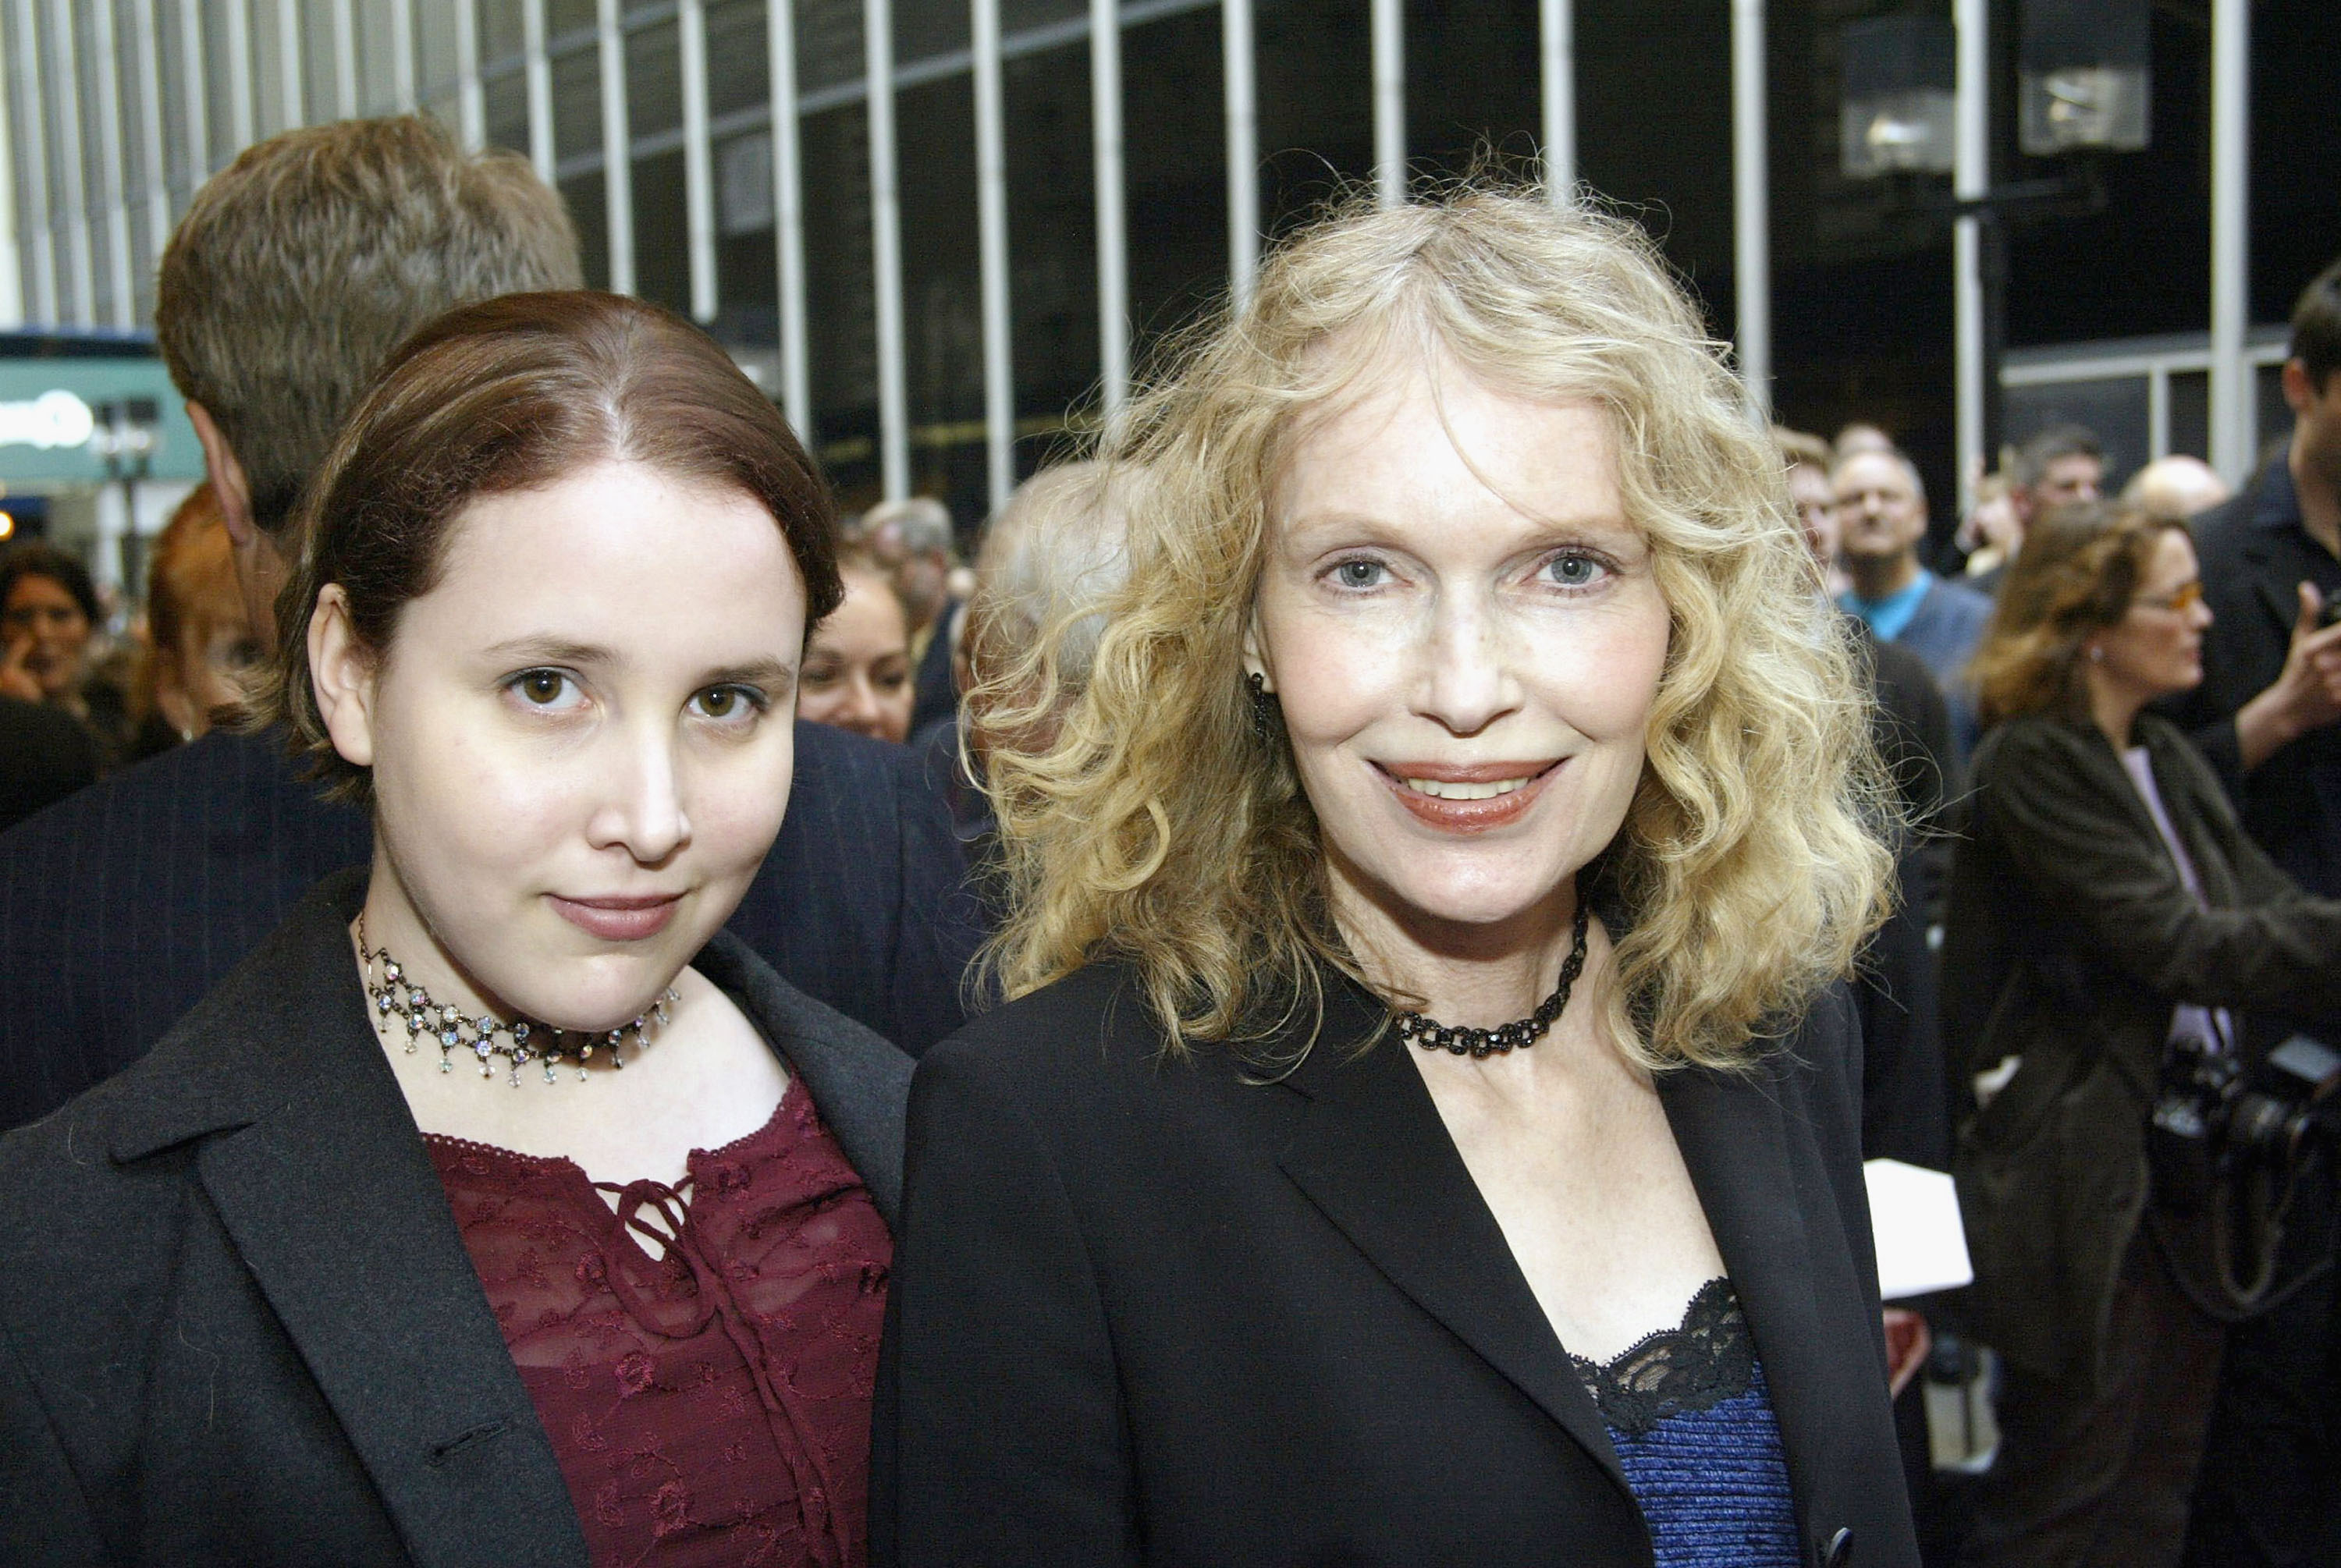 Mia Farrow and daughter Malone Farrow arrive at the Opening Night of  Gypsy  on Broadway at The Shubert Theatre on May 1, 2003 in New York City.